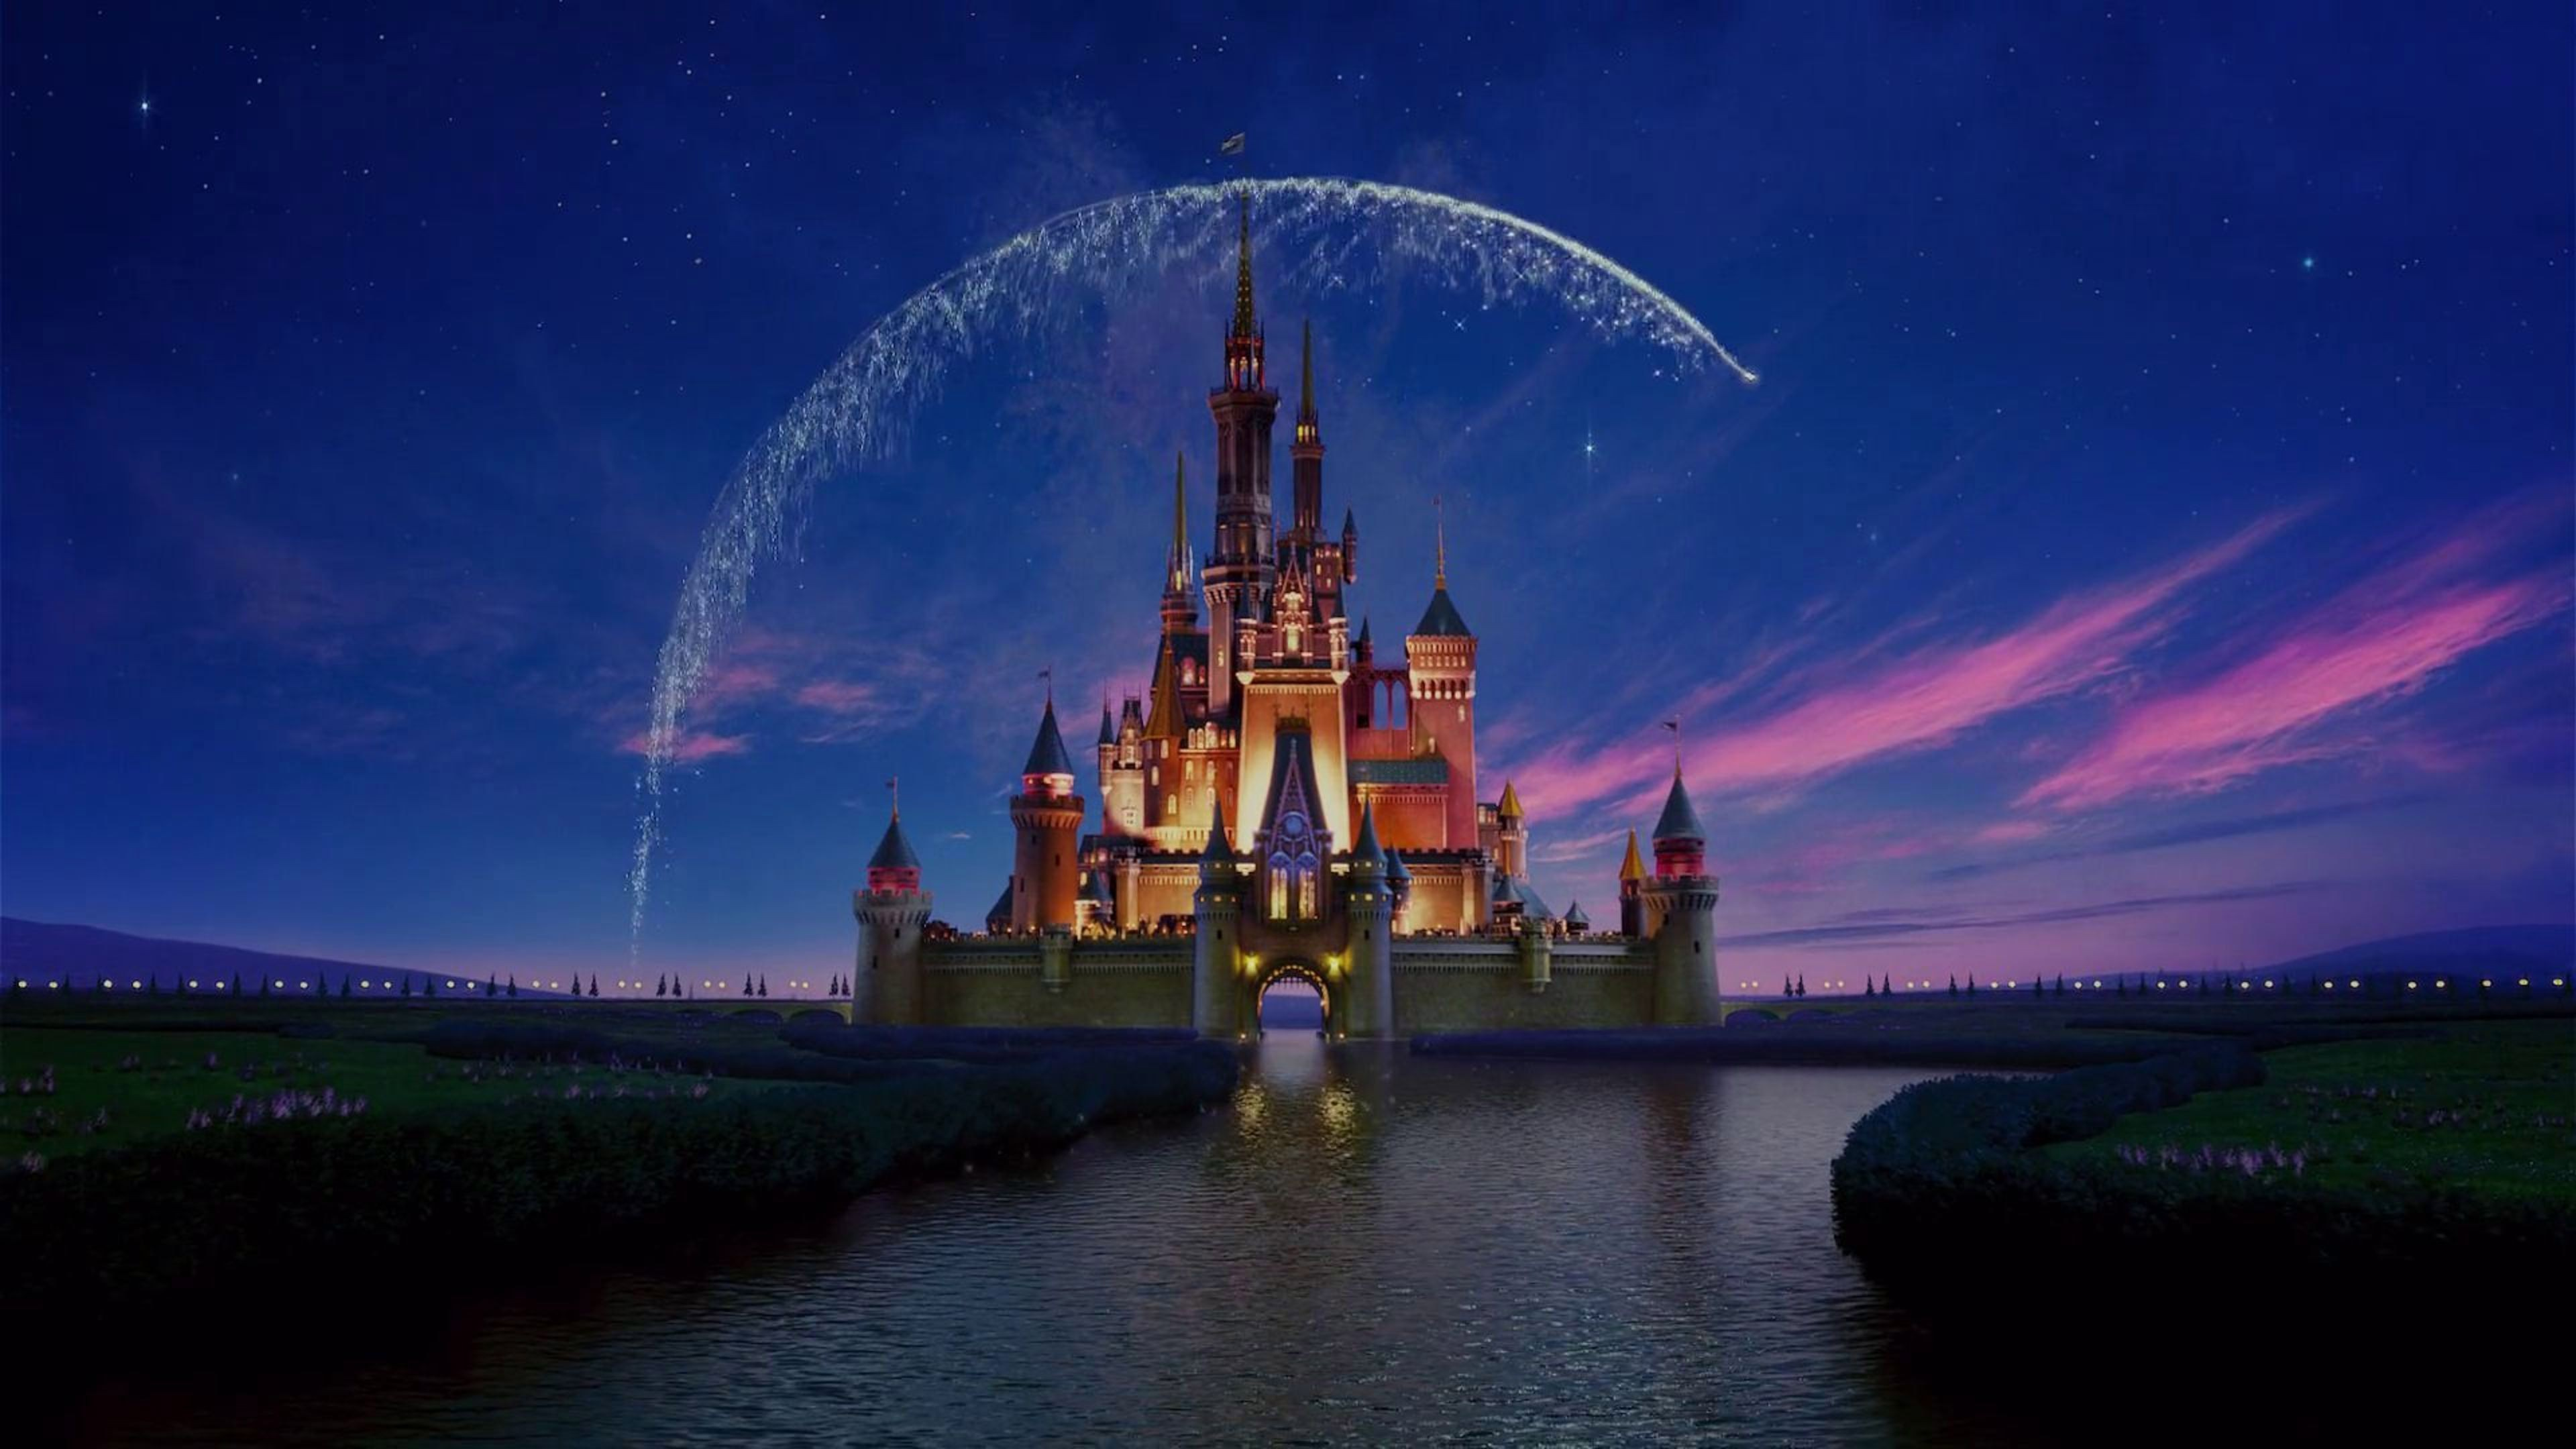 Disney background ·â'  Download free cool backgrounds for desktop